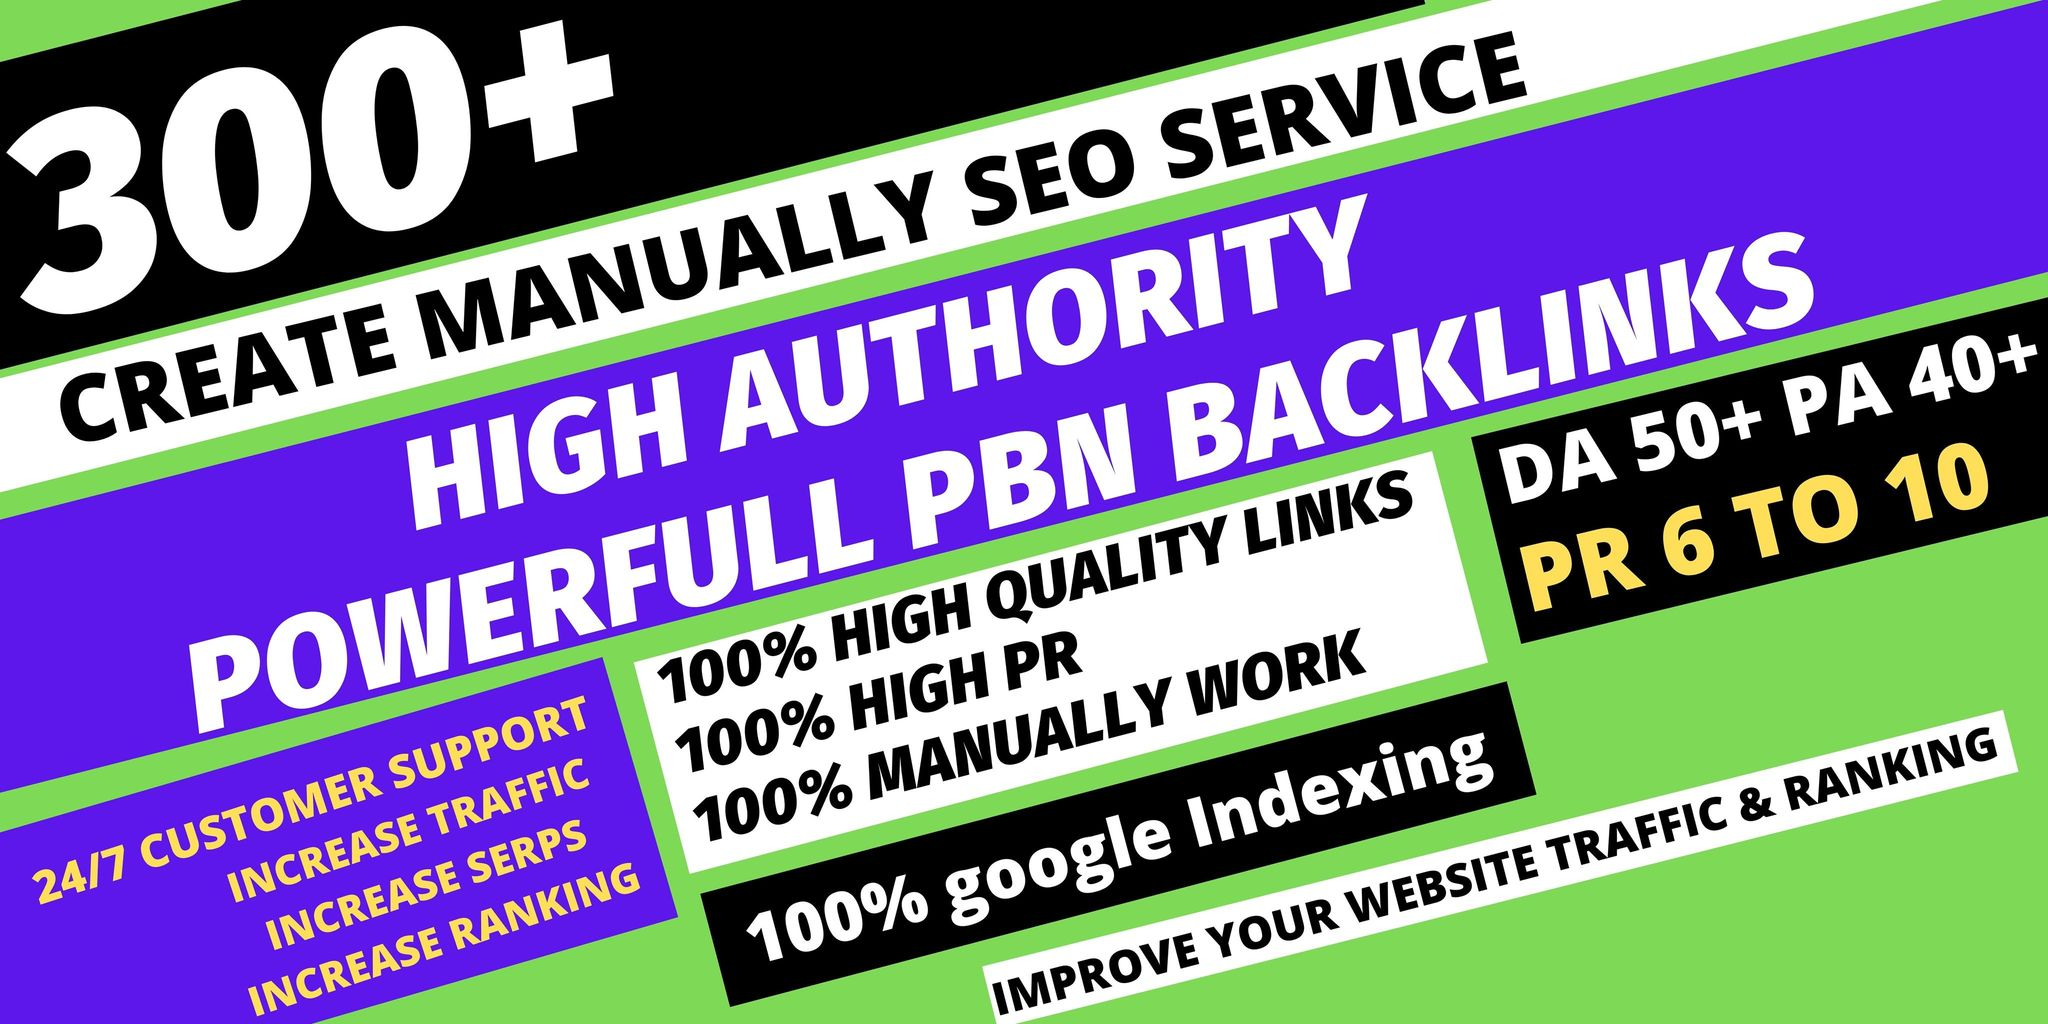 get premium permanent 300 Pbn Backlink DA50+PA40+PR6+homepage web 2.0 with dofollow 50 unique site